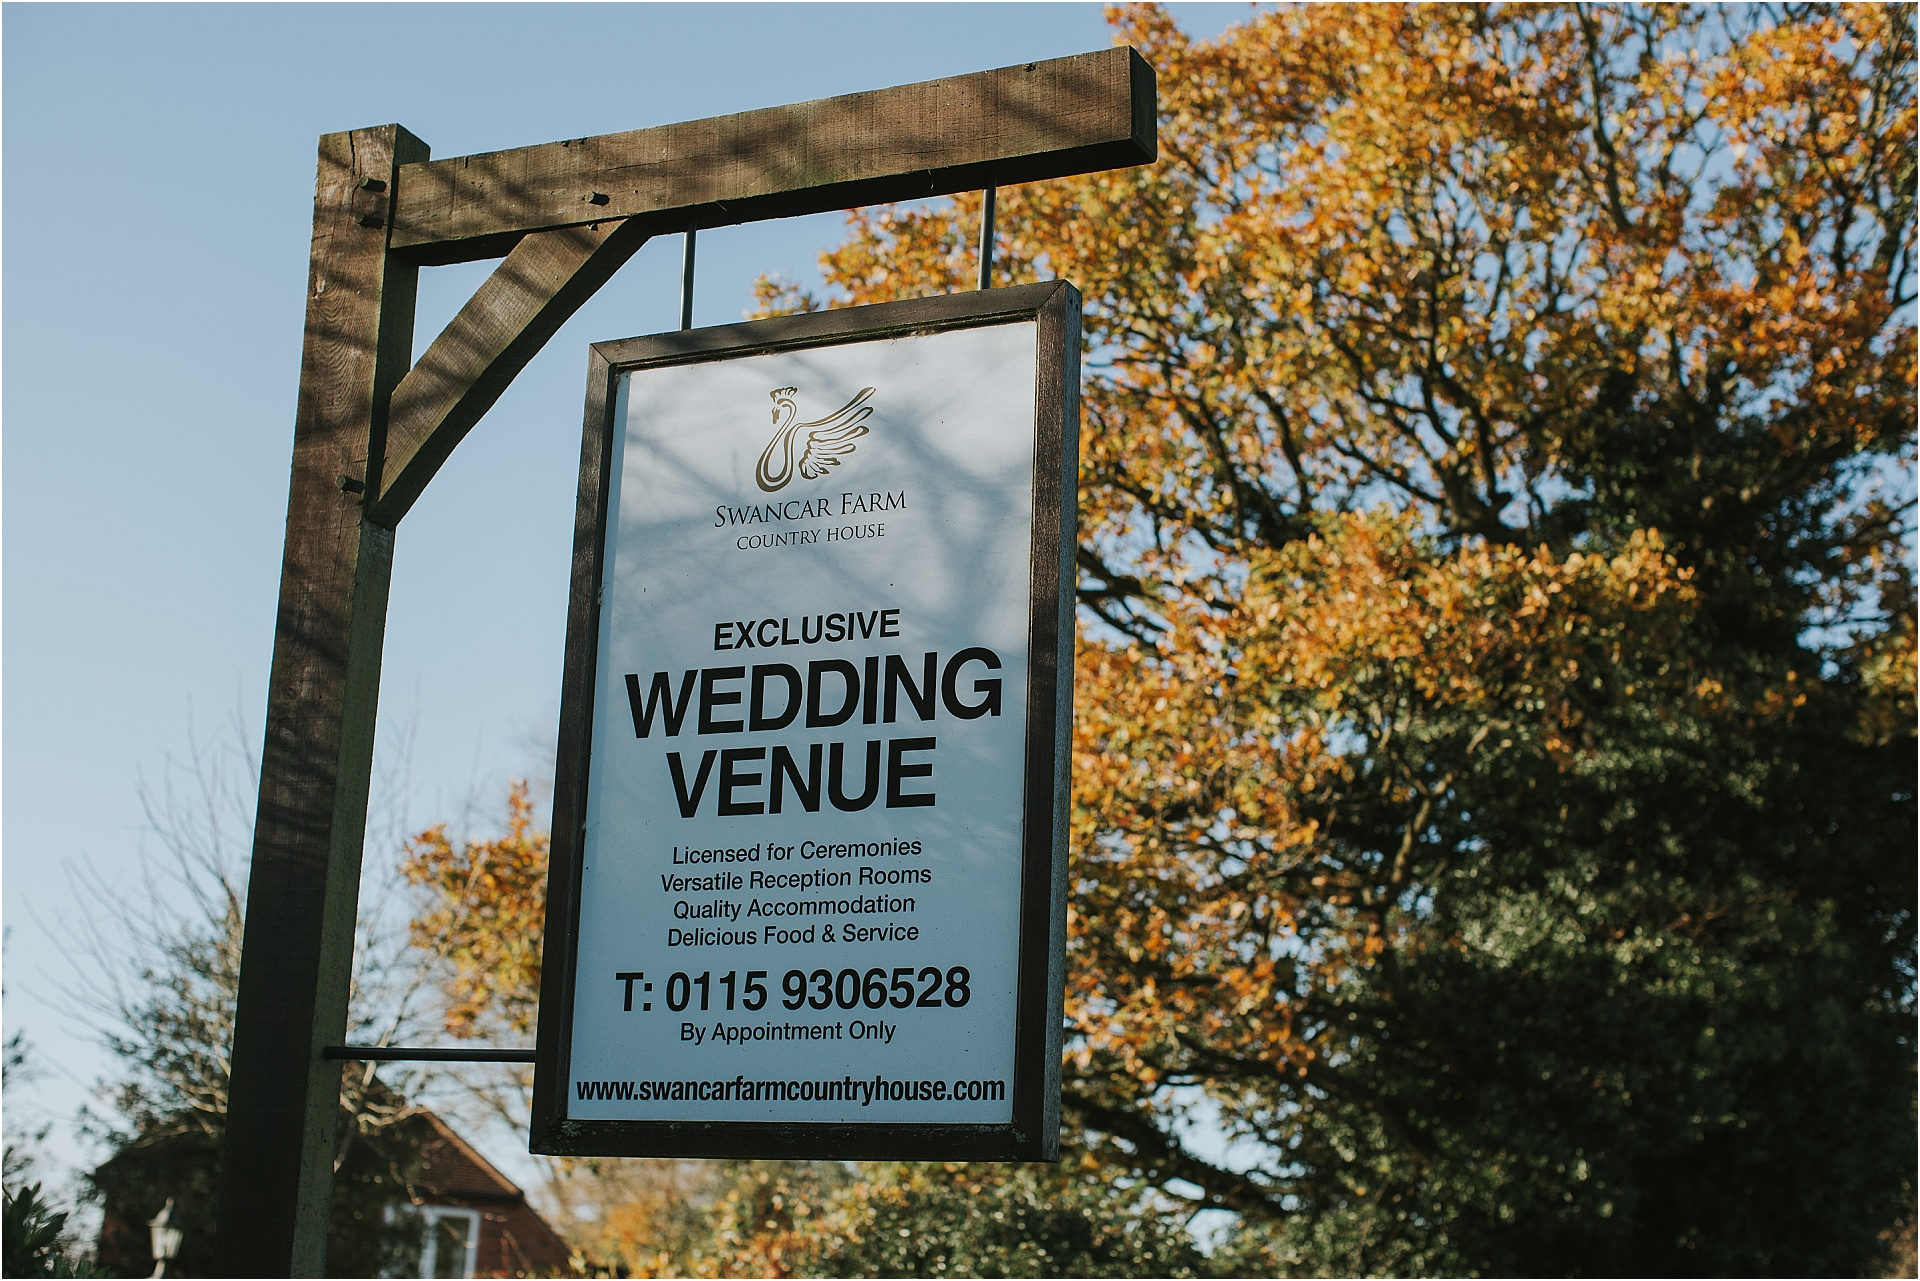 Swancar farm wedding venue